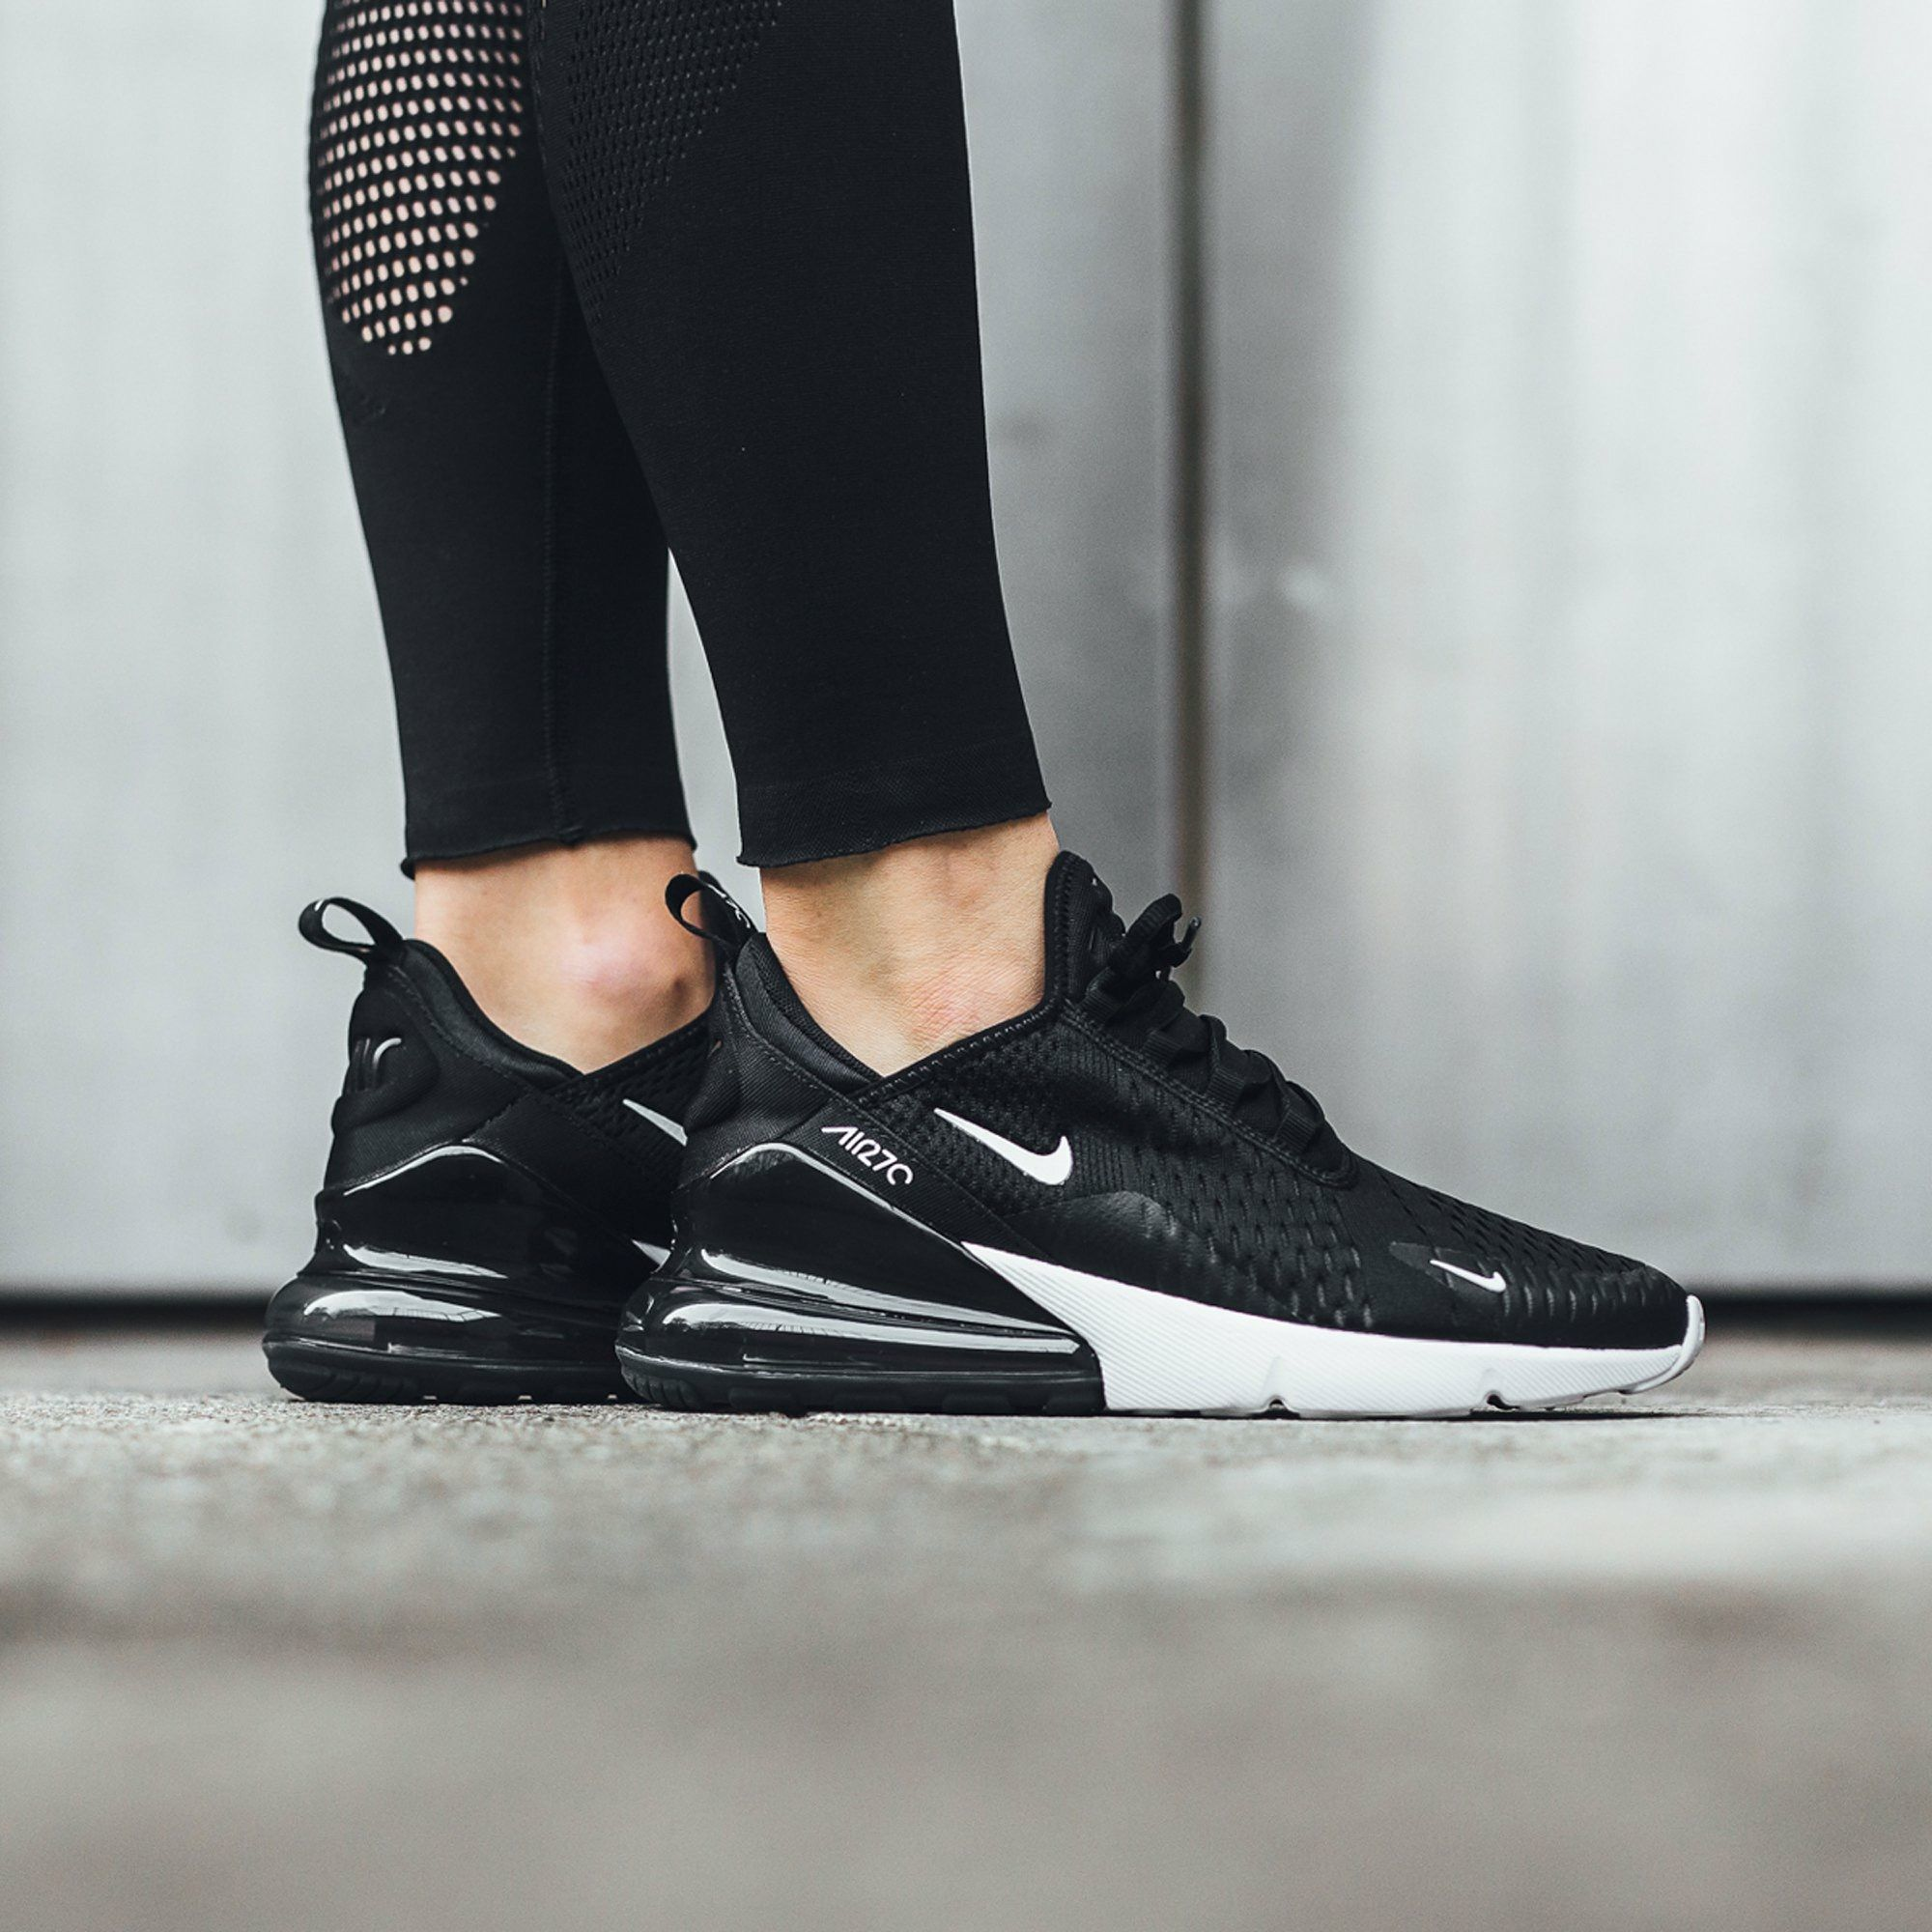 Nike Air Max 270 | Things I Like in 2019 | Nike shoes, Shoes